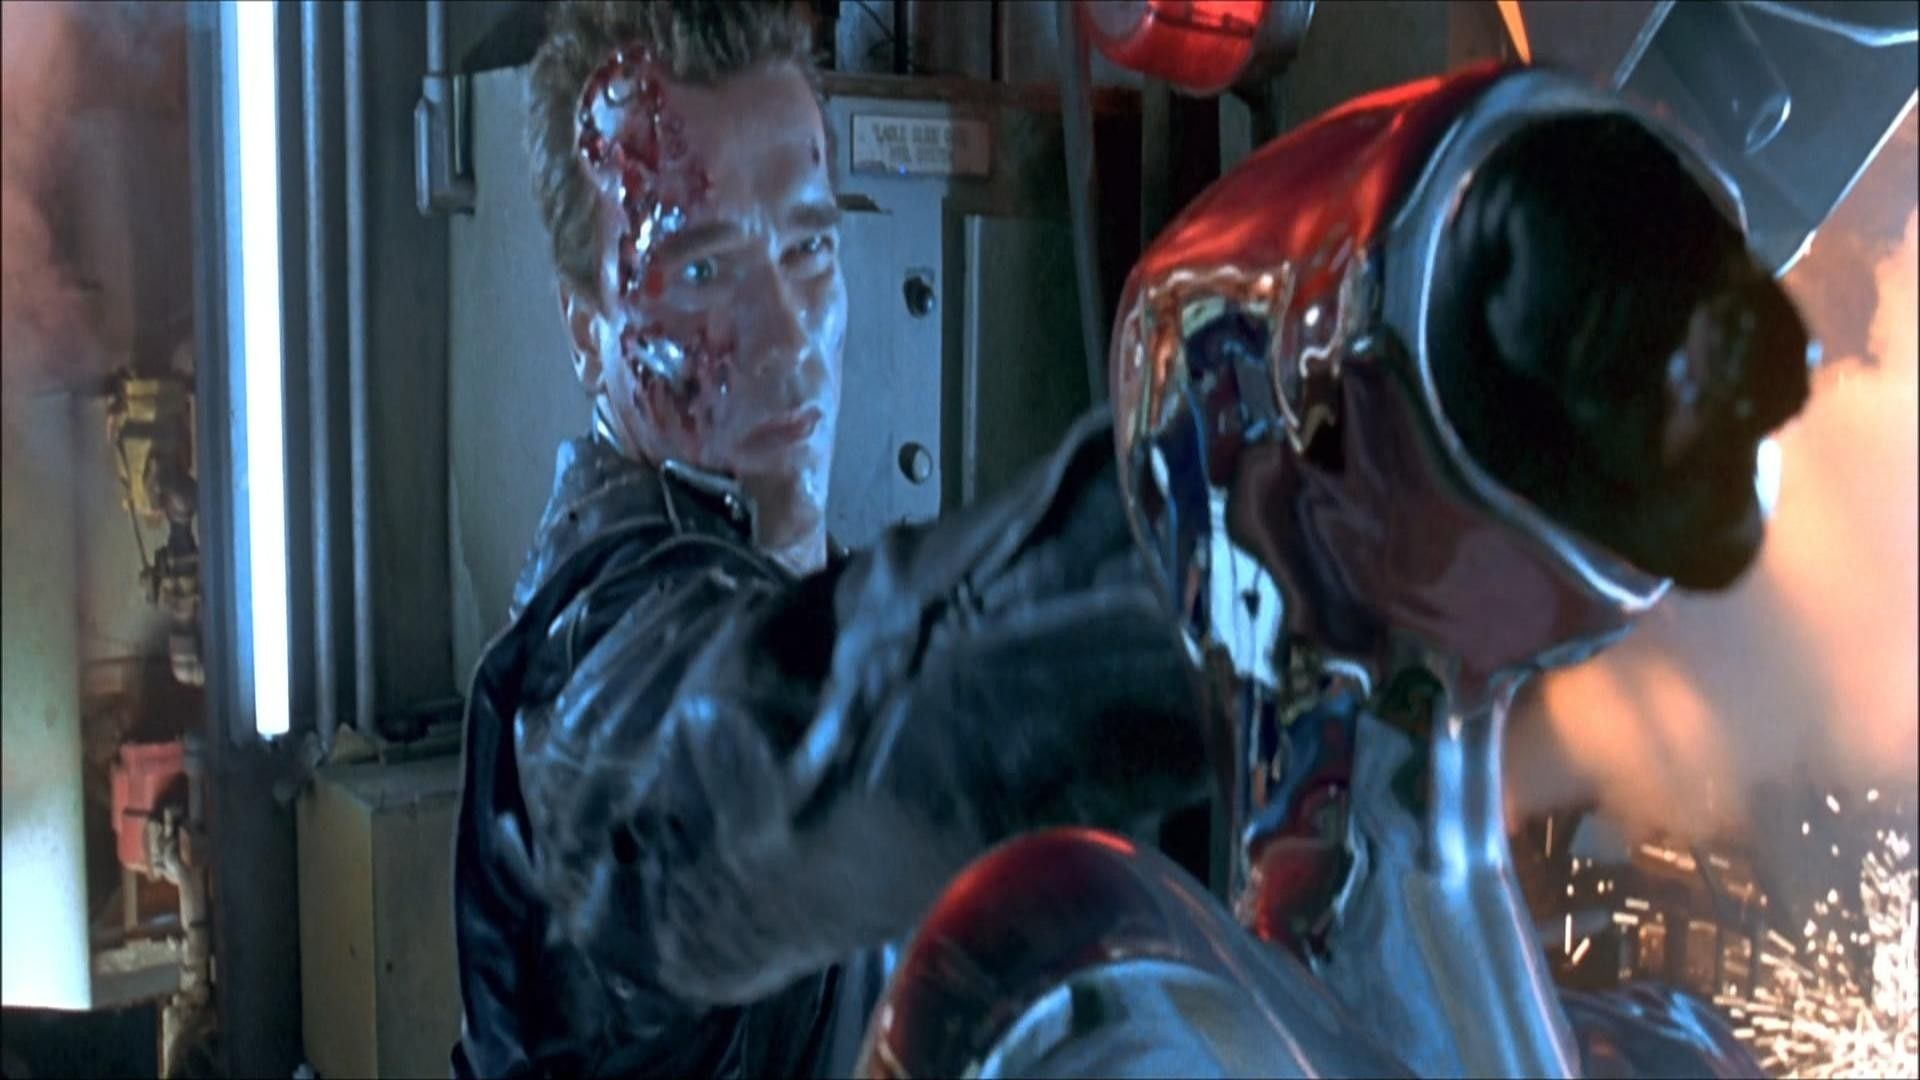 Pin by Alex Falcon on Movies and cool stuff Terminator